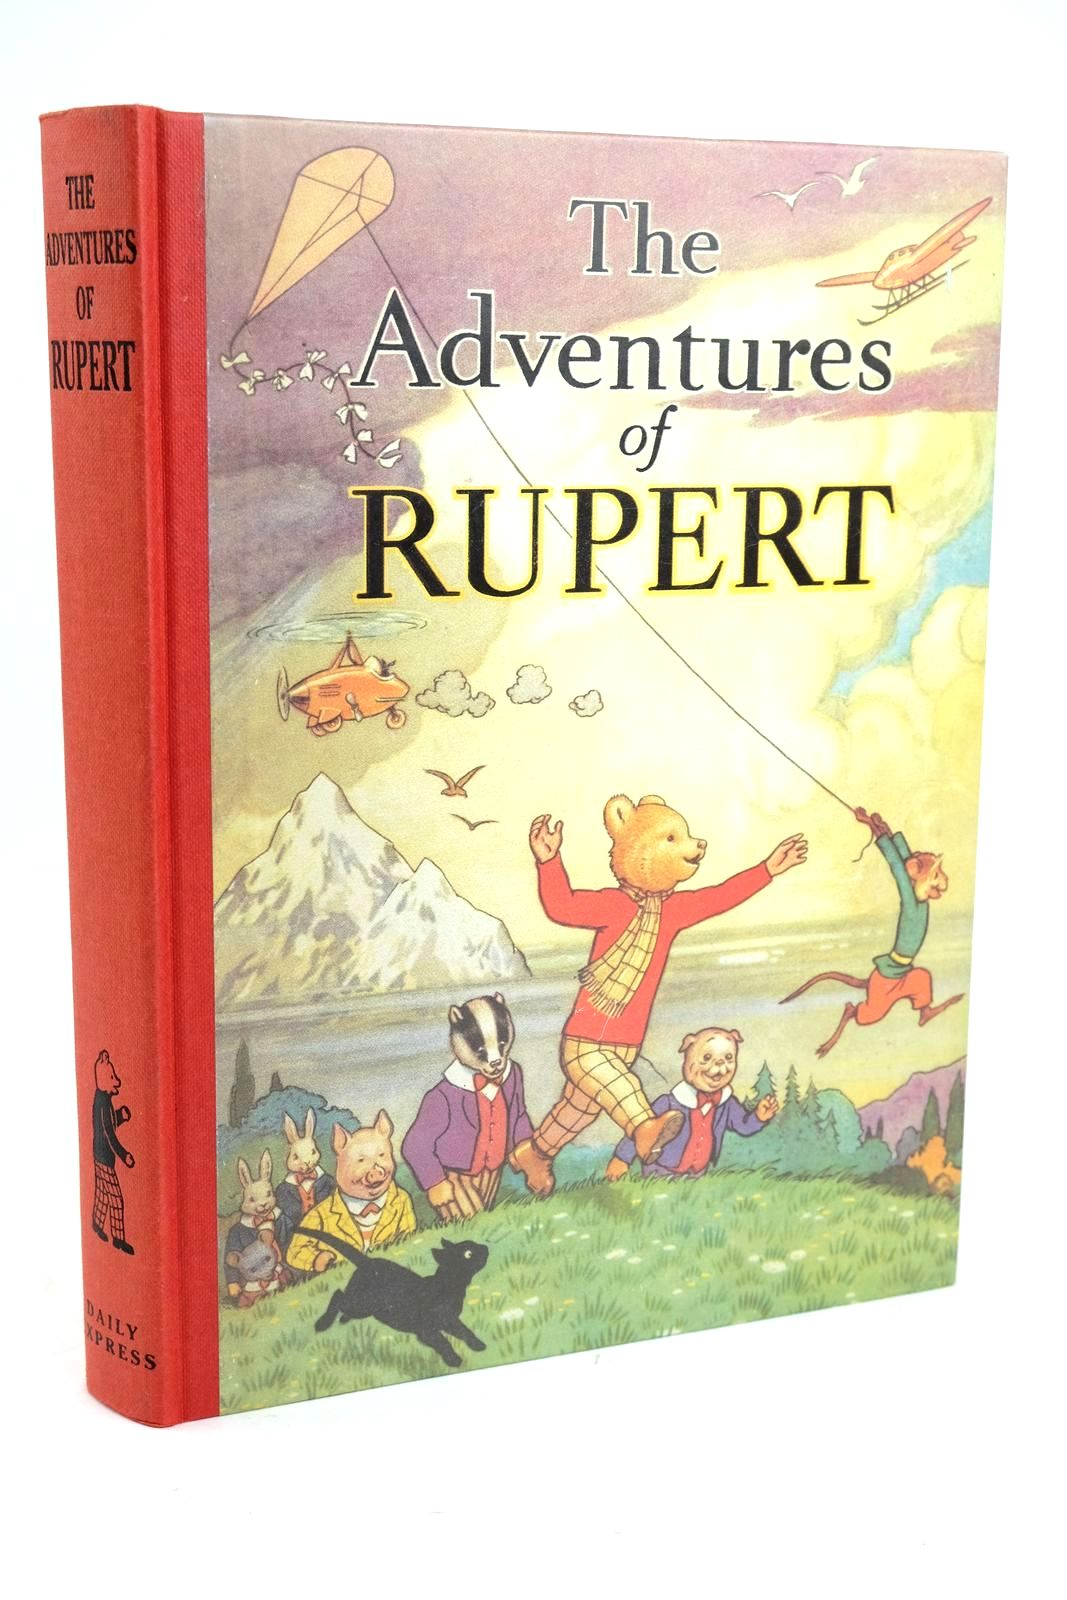 Photo of RUPERT ANNUAL 1939 (FACSIMILE) - THE ADVENTURES OF RUPERT written by Bestall, Alfred illustrated by Bestall, Alfred published by Daily Express (STOCK CODE: 1319411)  for sale by Stella & Rose's Books